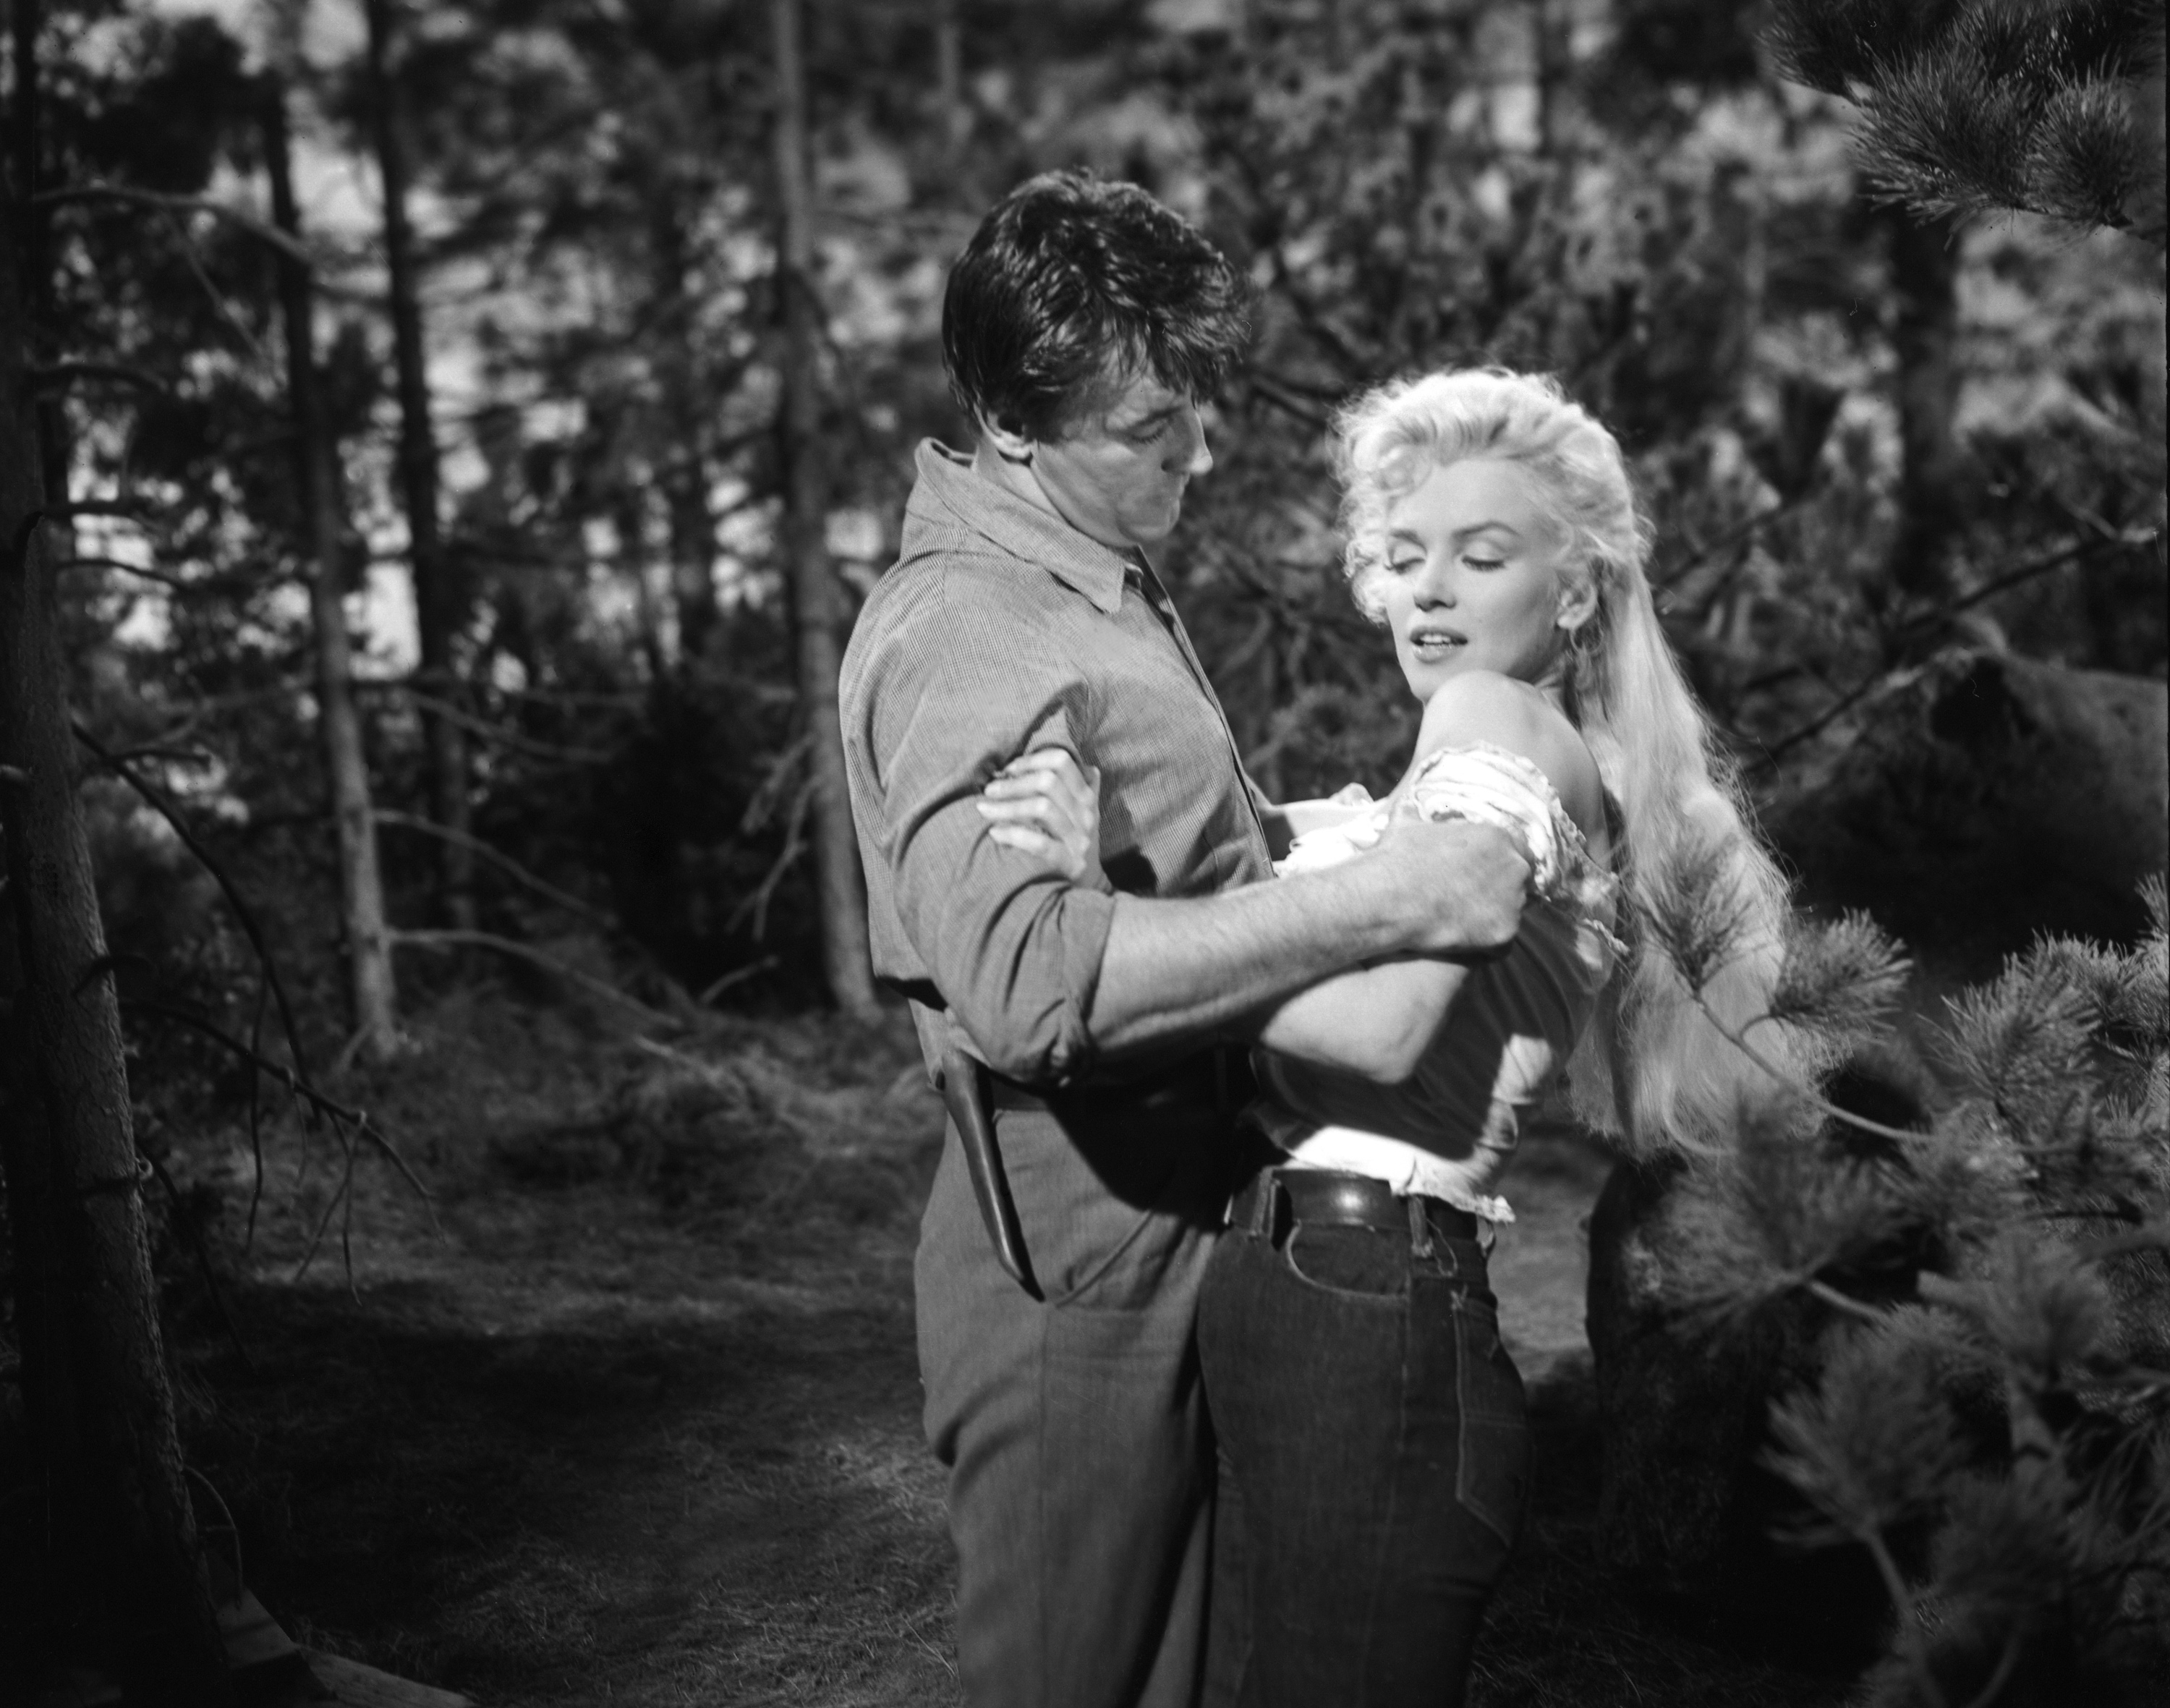 Robert Mitchum and Marilyn Monroe in River of No Return (1954)